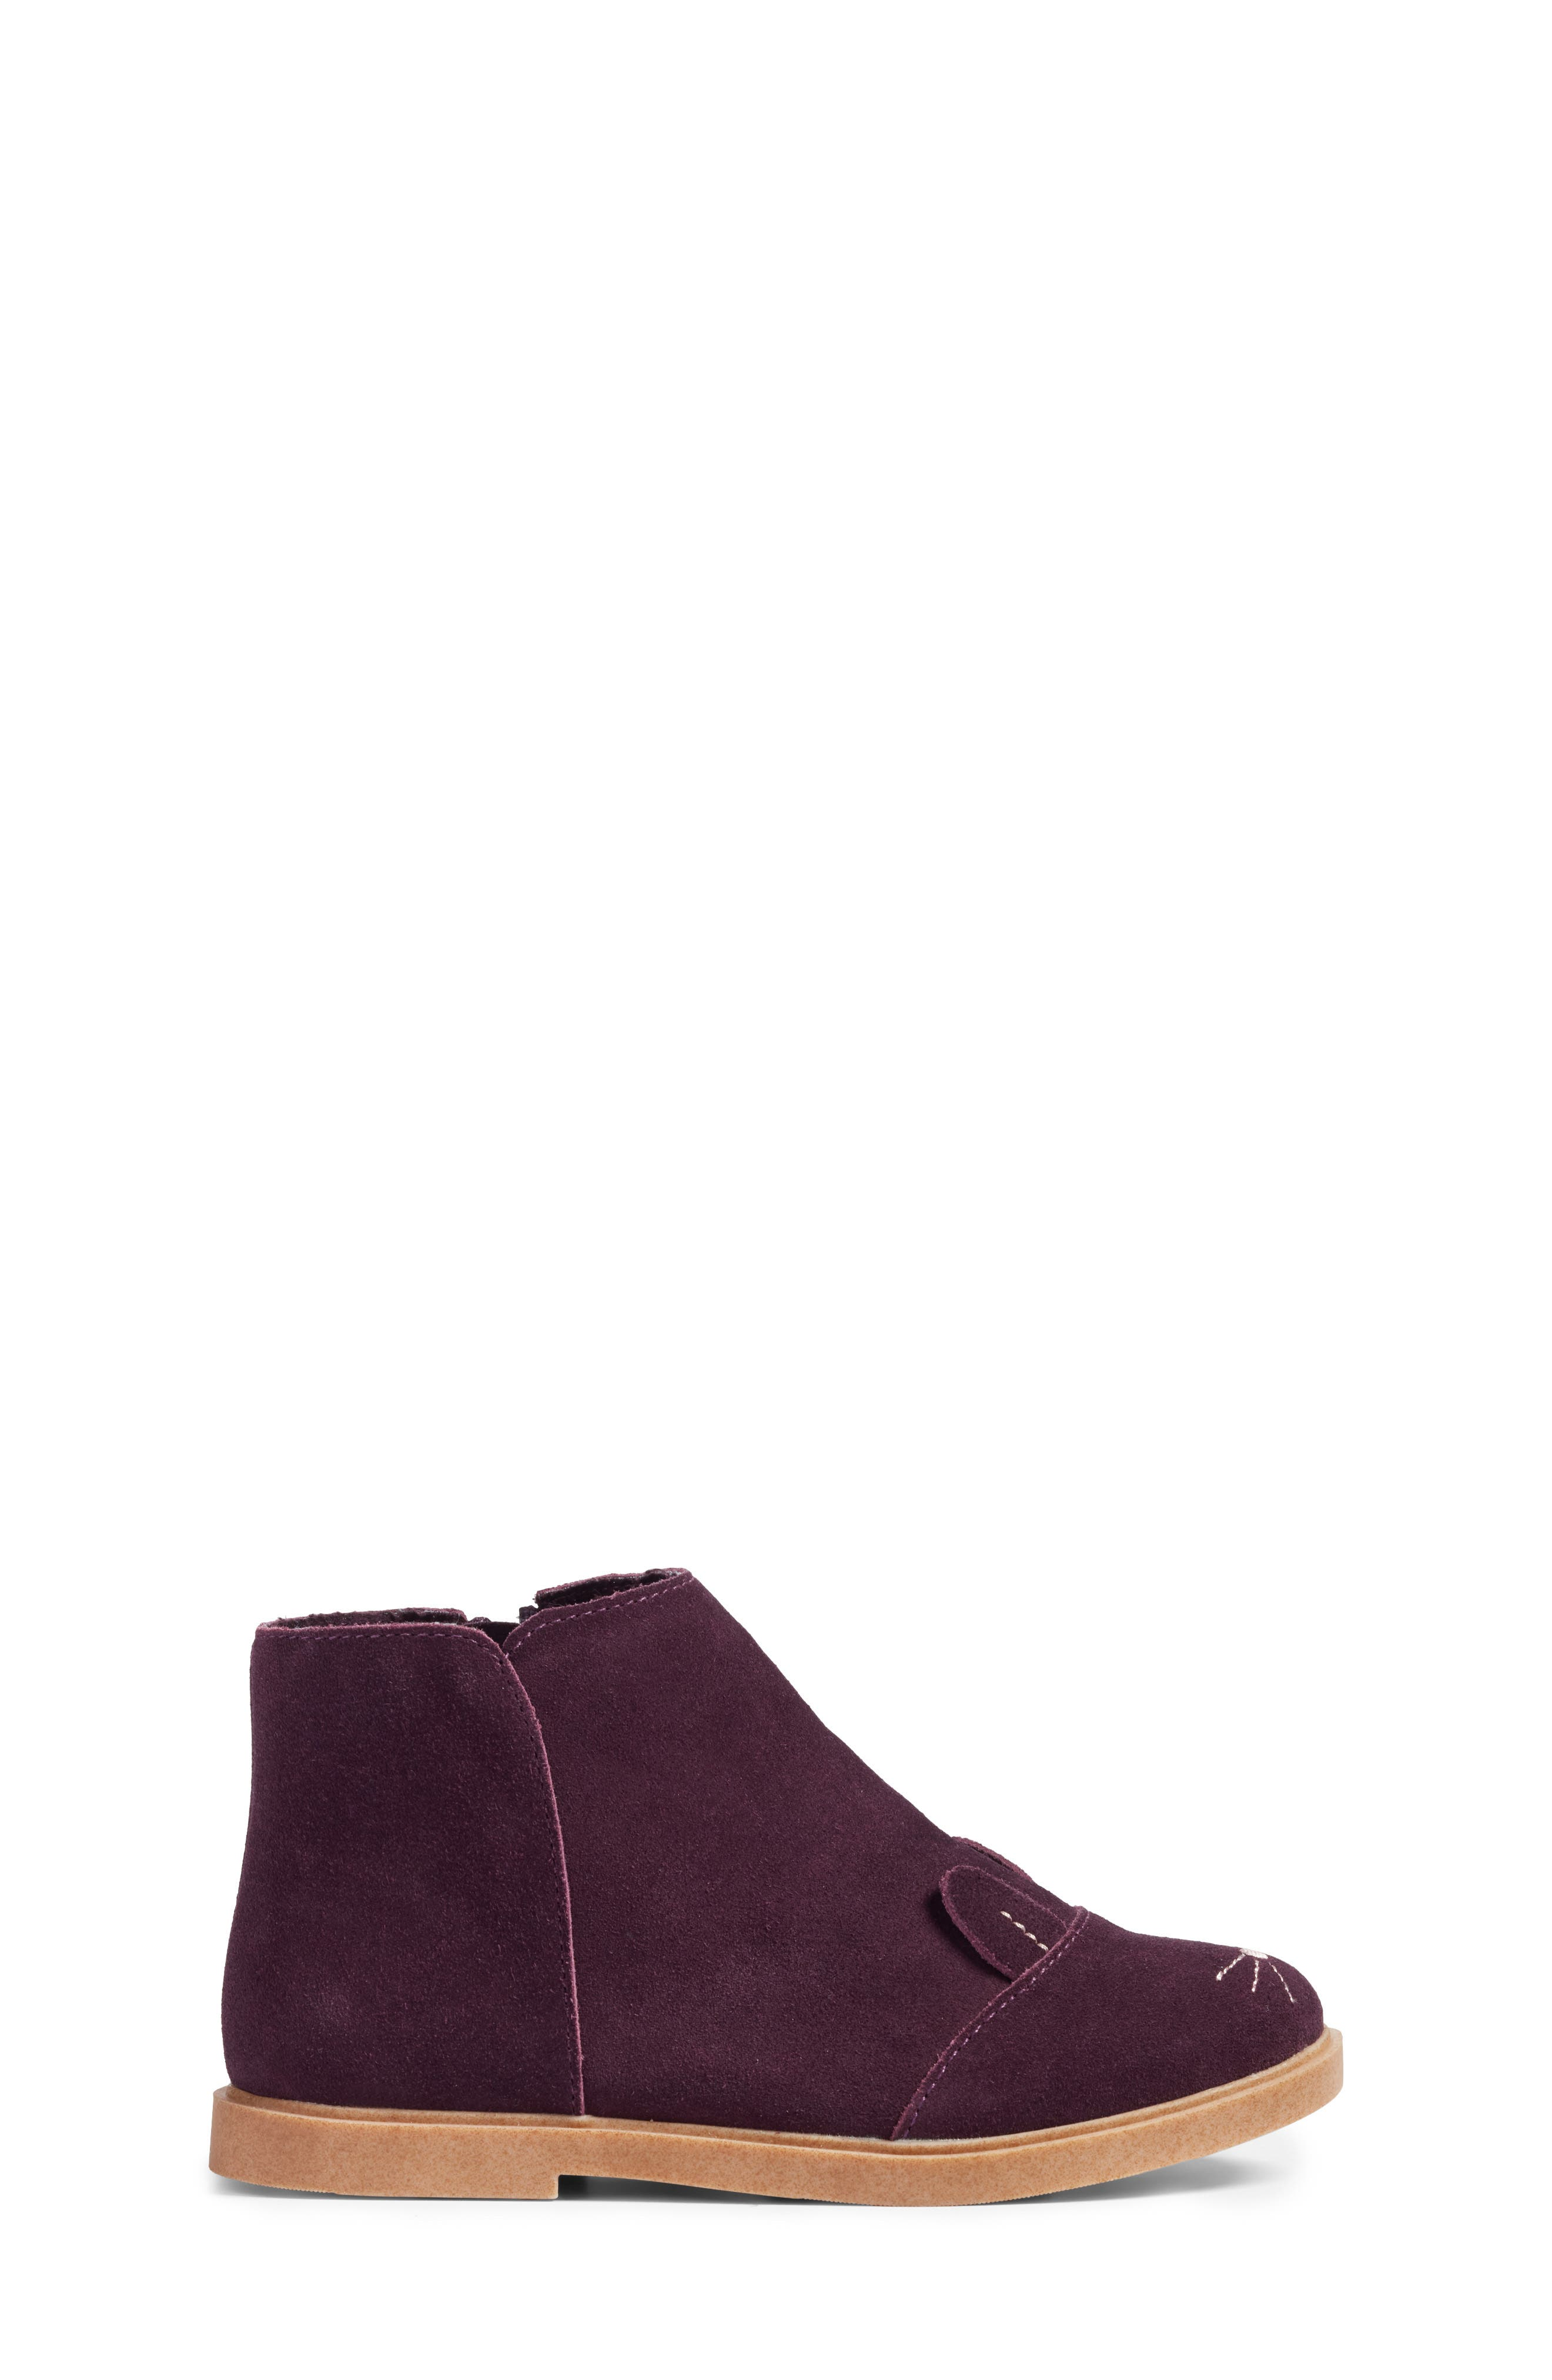 Bunny Boot,                             Alternate thumbnail 3, color,                             Berry Leather